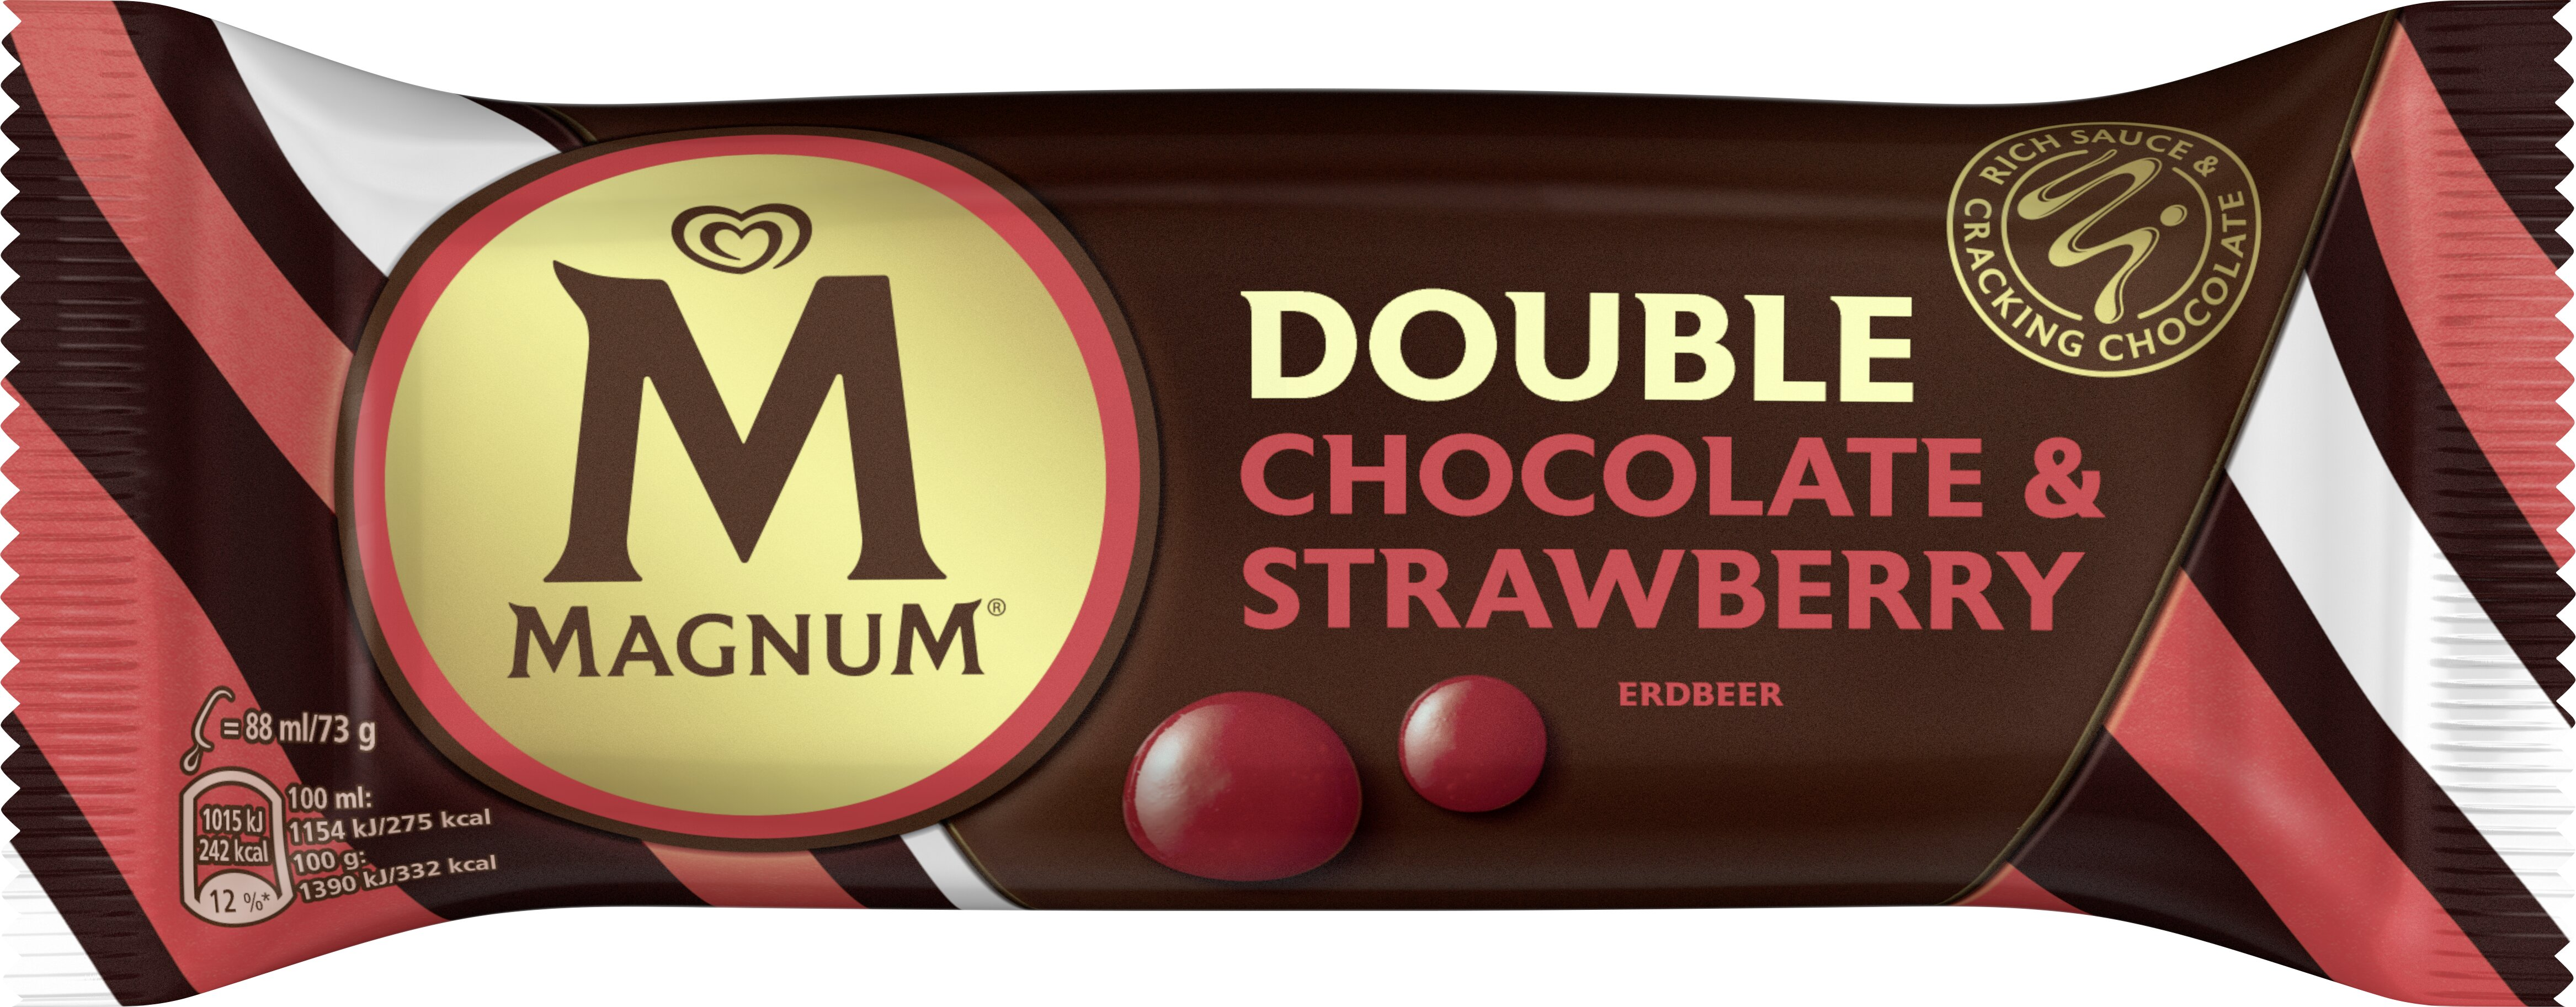 Magnum Double Chocolate & Strawberry 88ml -